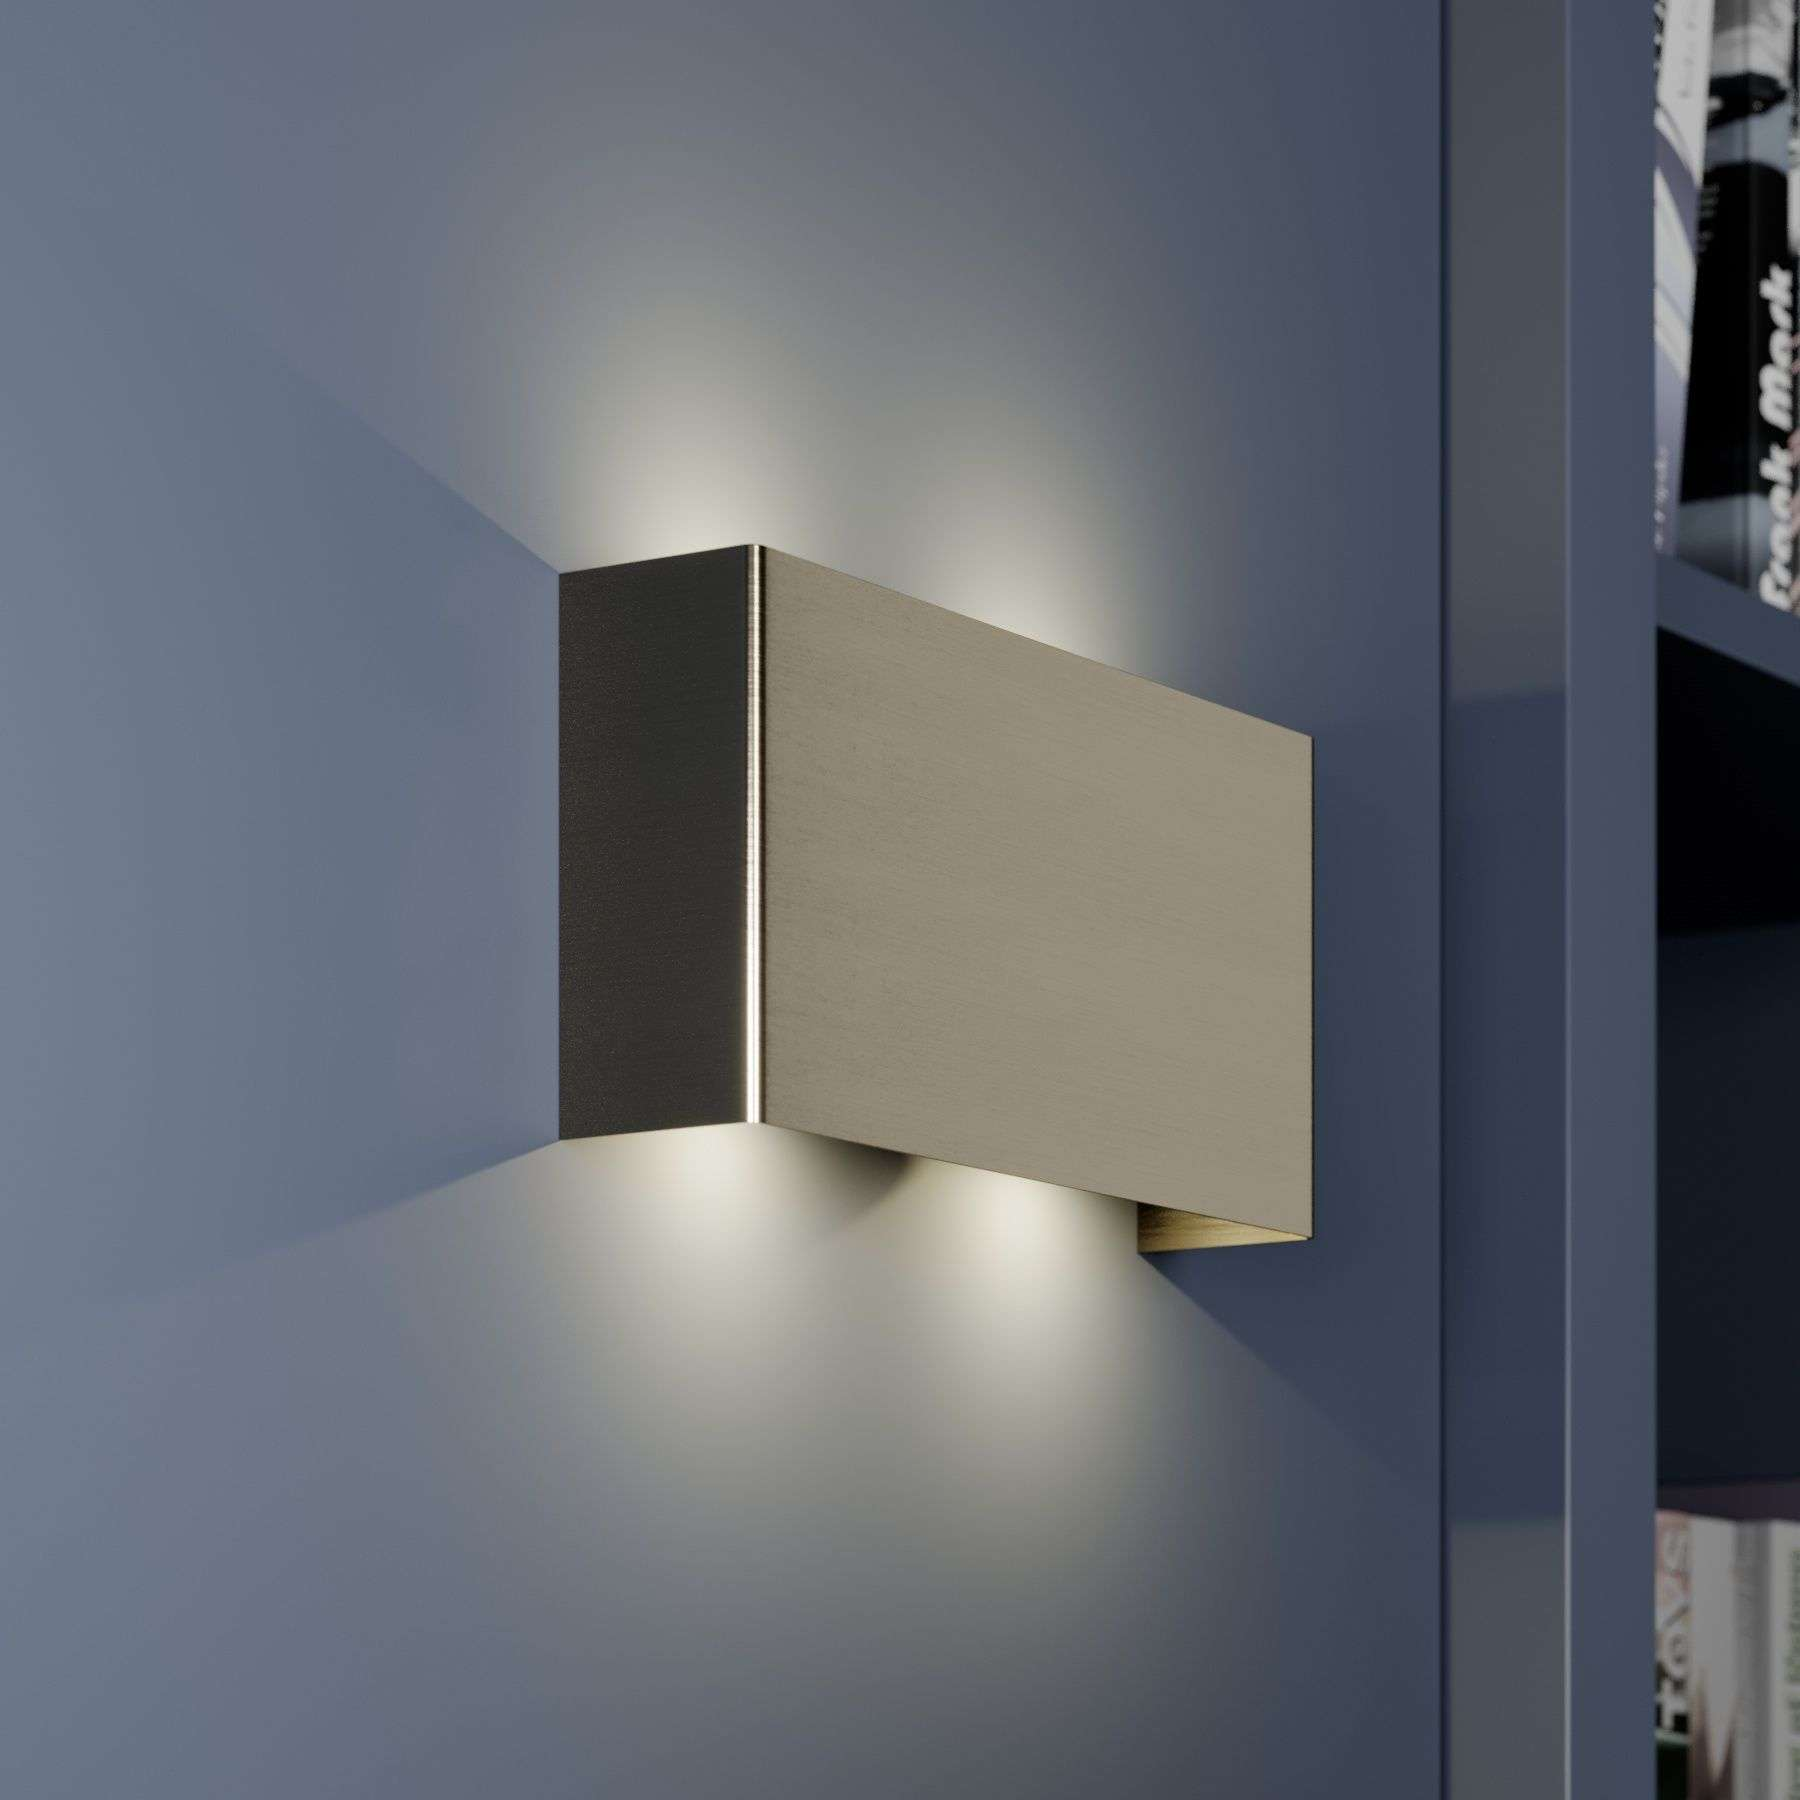 White Dimmable Wall Lights : Maja - dimmable LED wall light 22cm Lights.co.uk